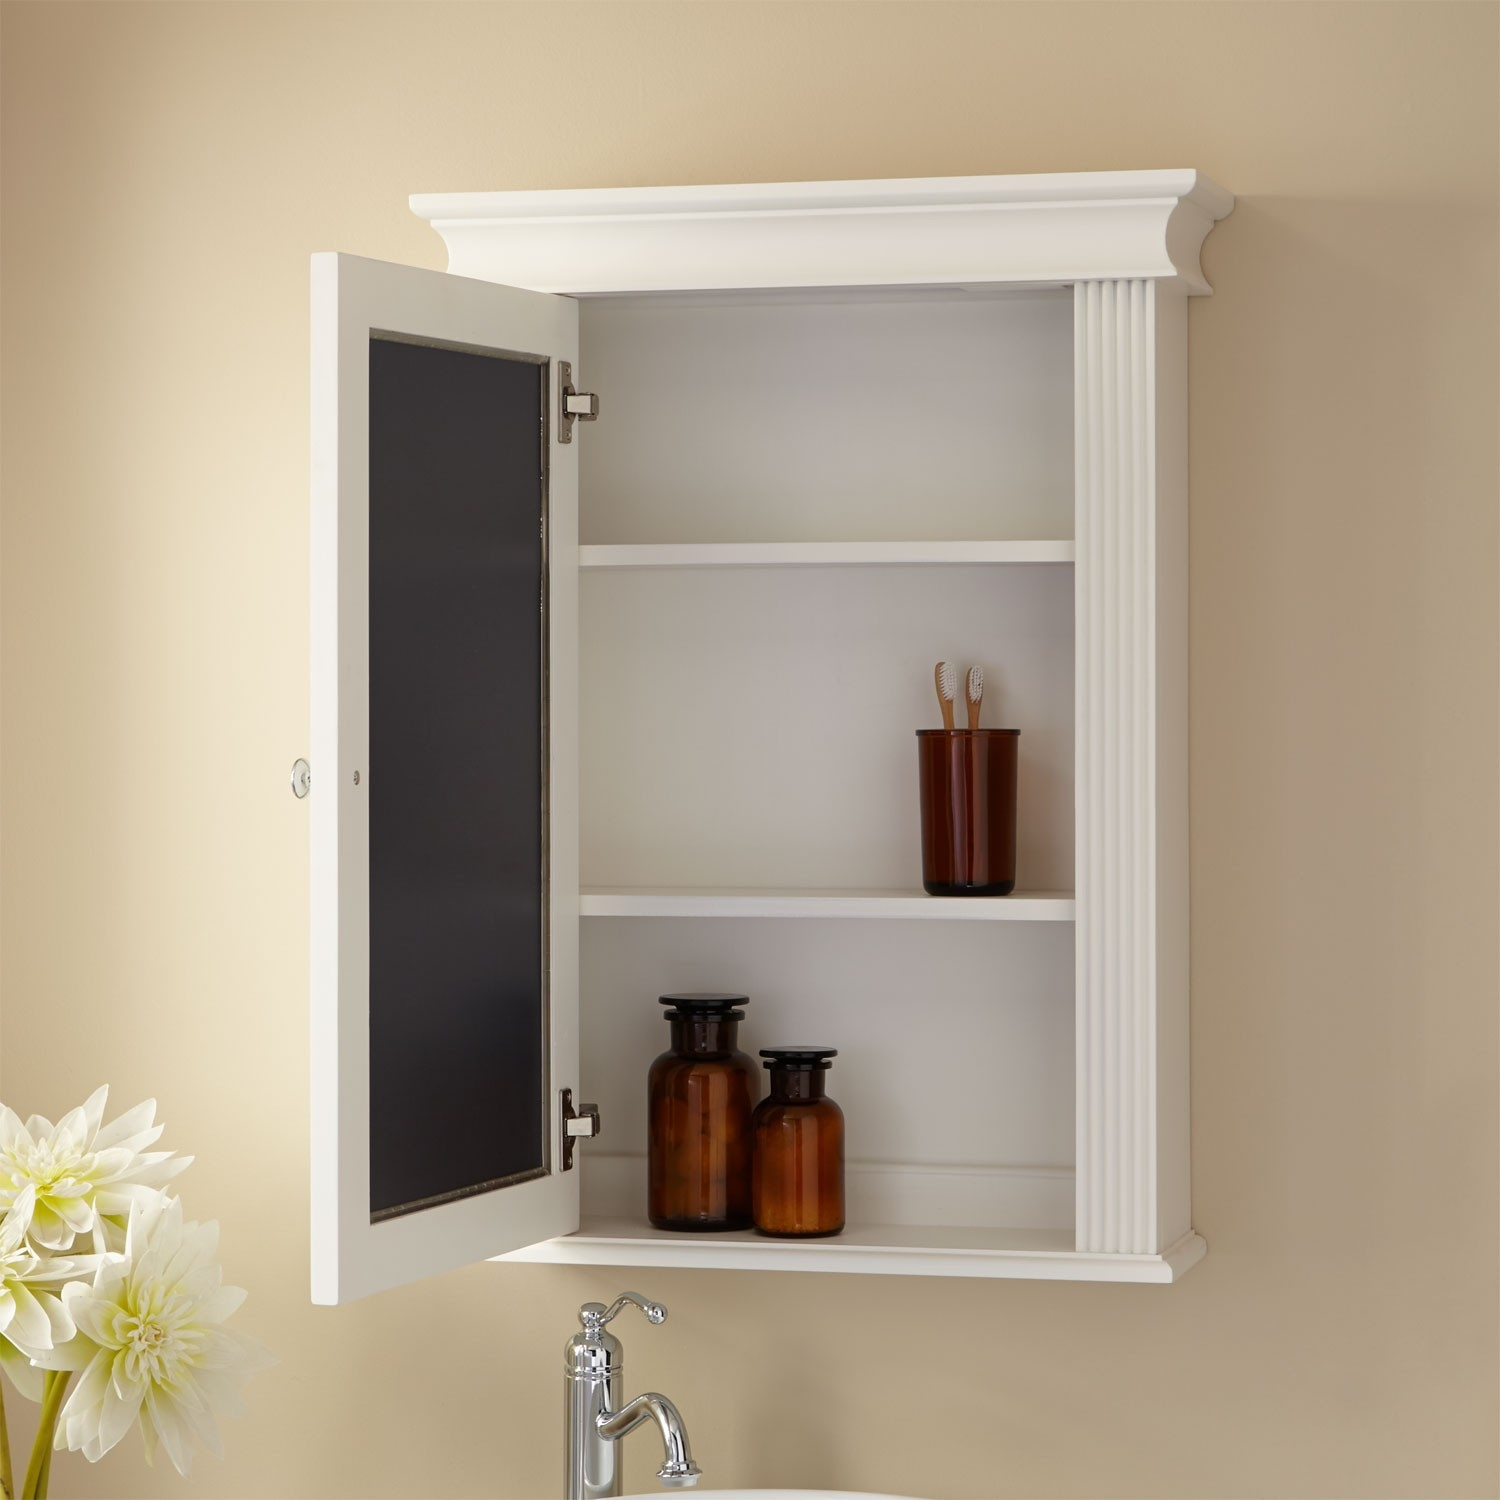 Permalink to Wooden Bathroom Cabinets Without Mirrors